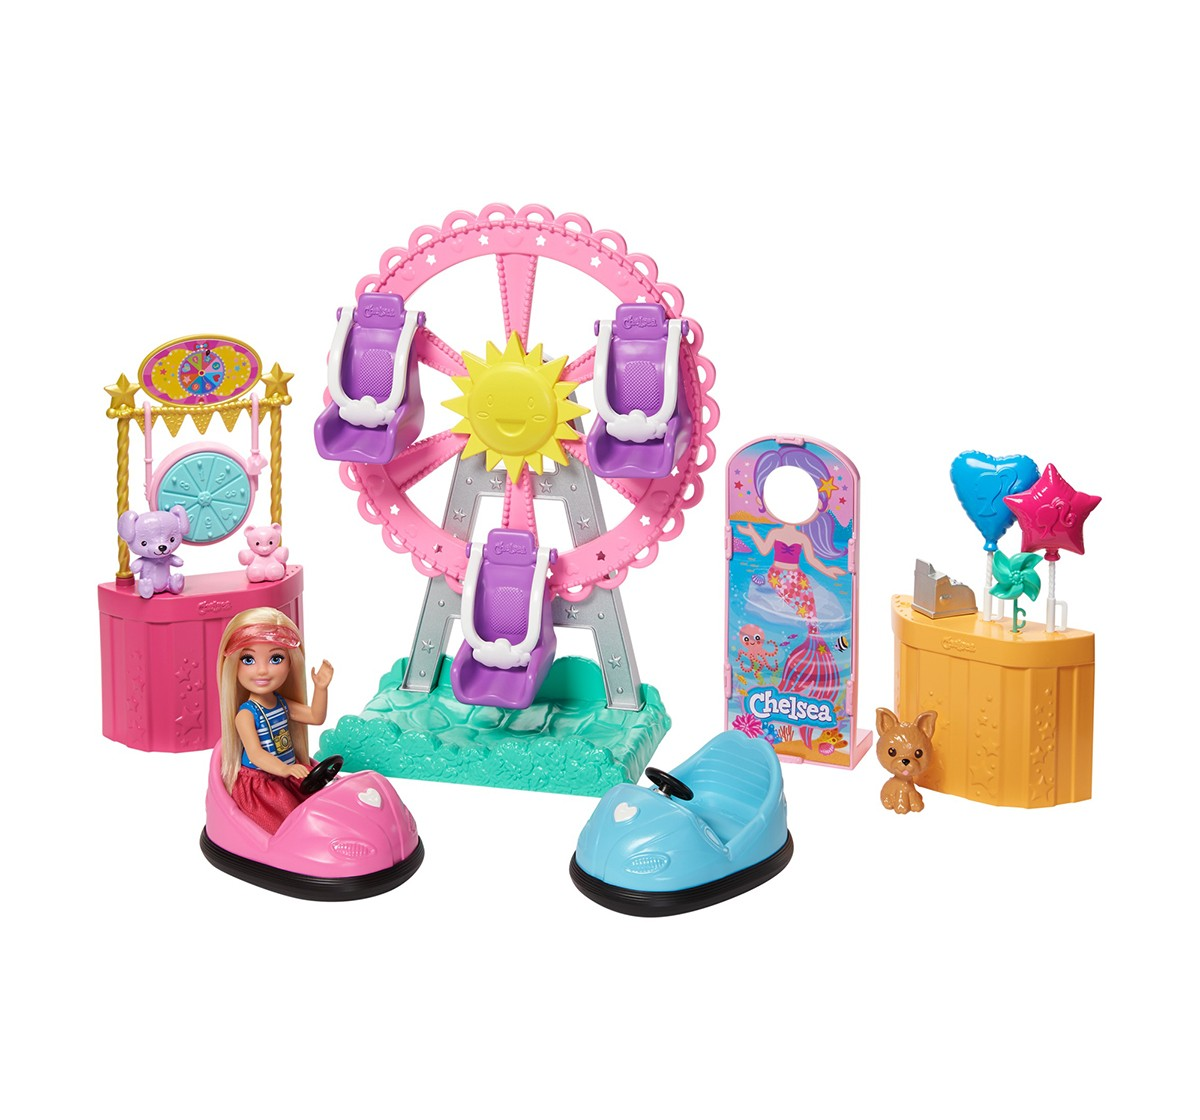 Barbie Chelsea Carnival Playset, Dolls & Accessories for Girls age 3Y+